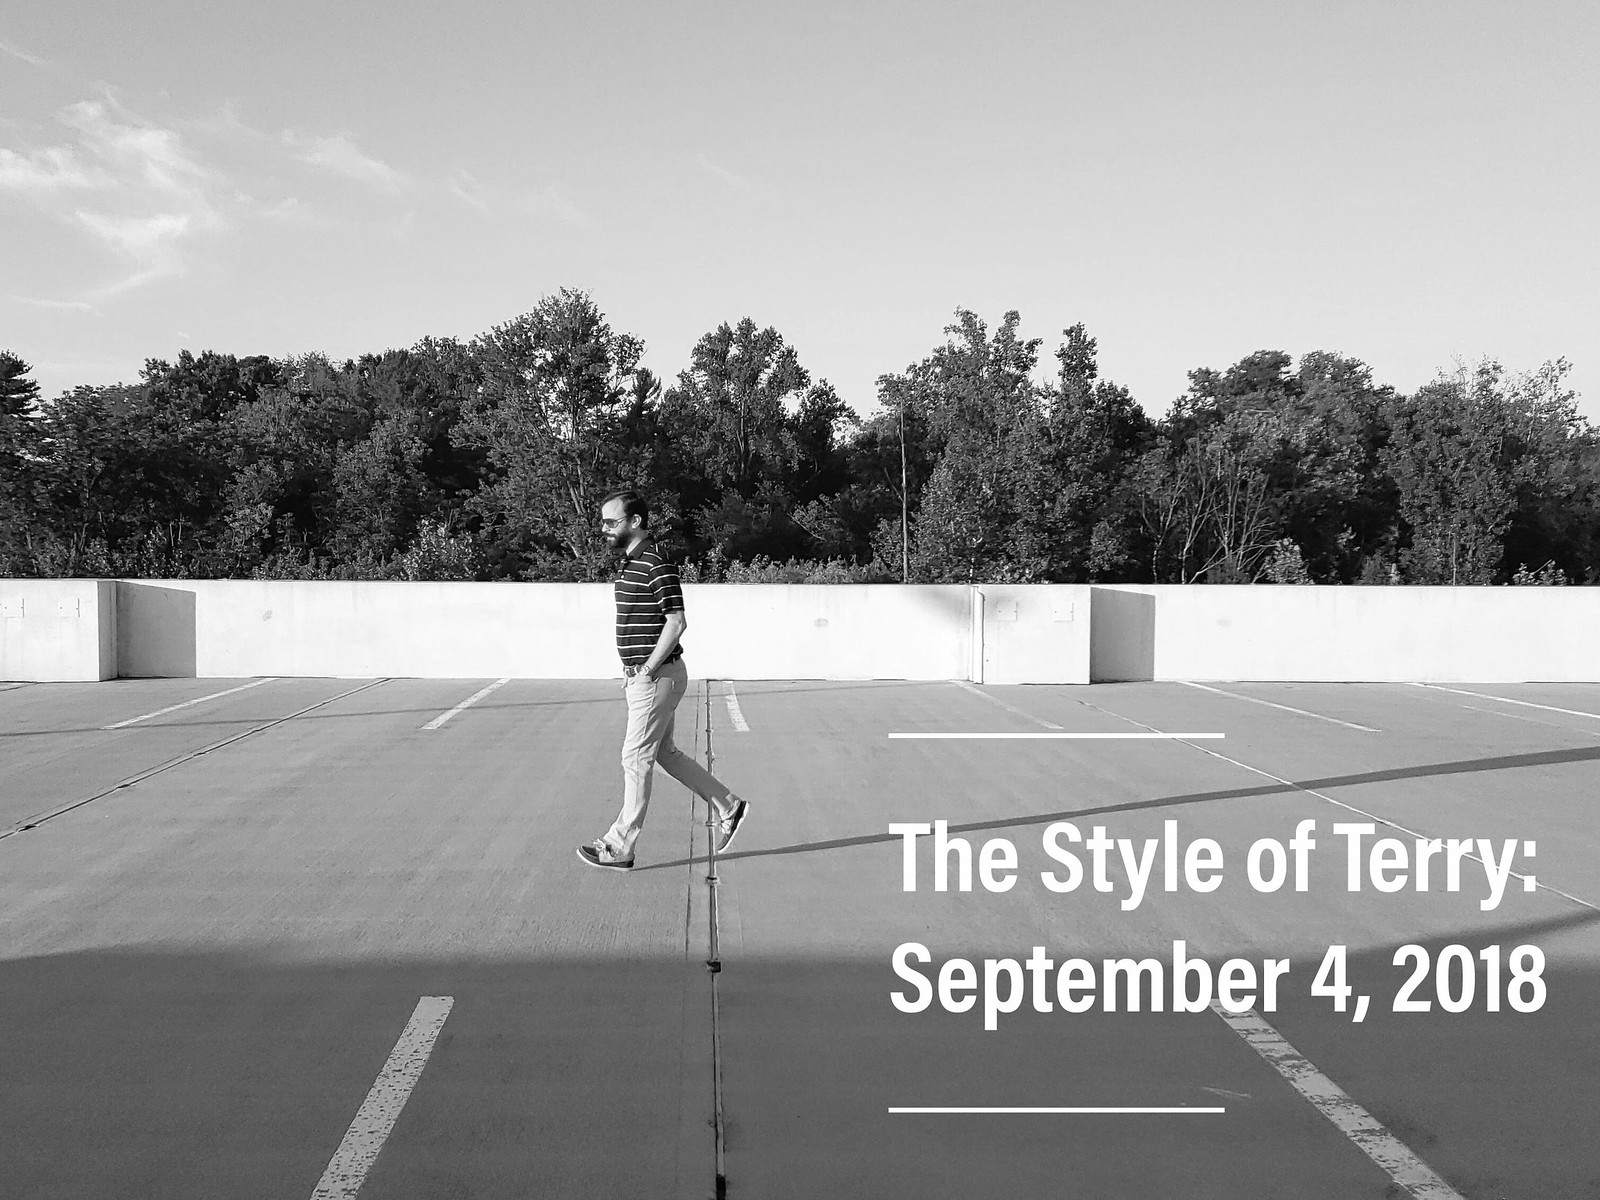 The Style of Terry: 9.4.18